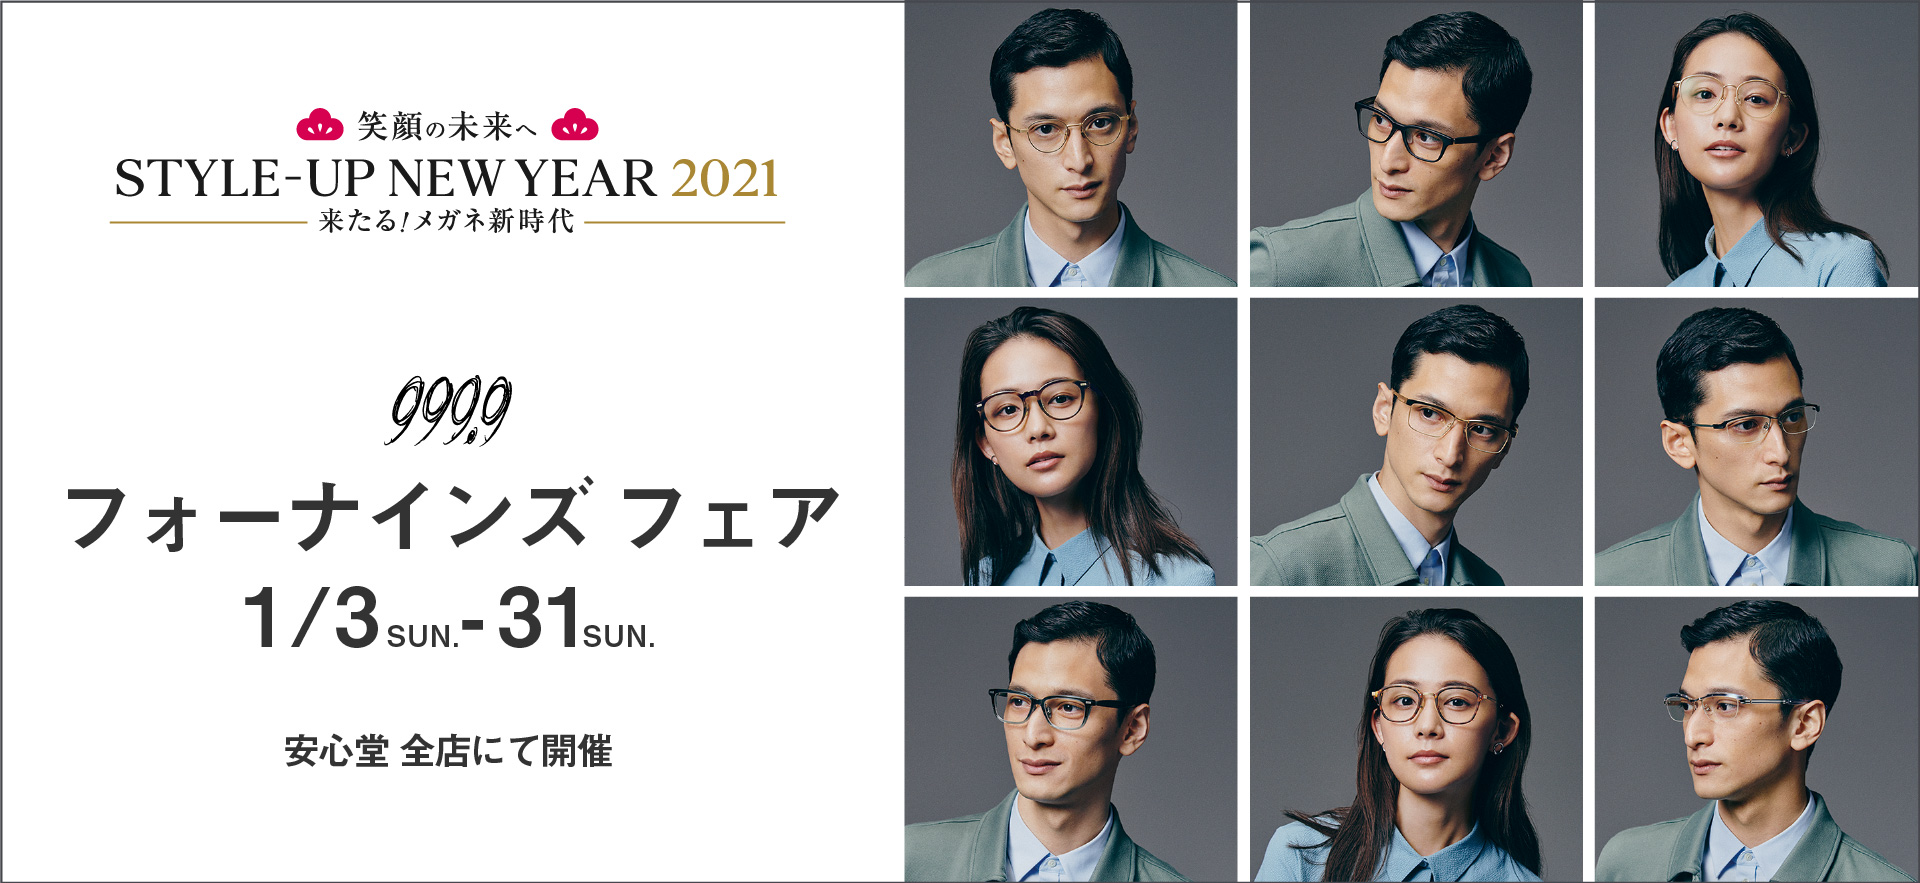 STYLE-UP NEW YEAR 2021〜フォーナインズ フェア